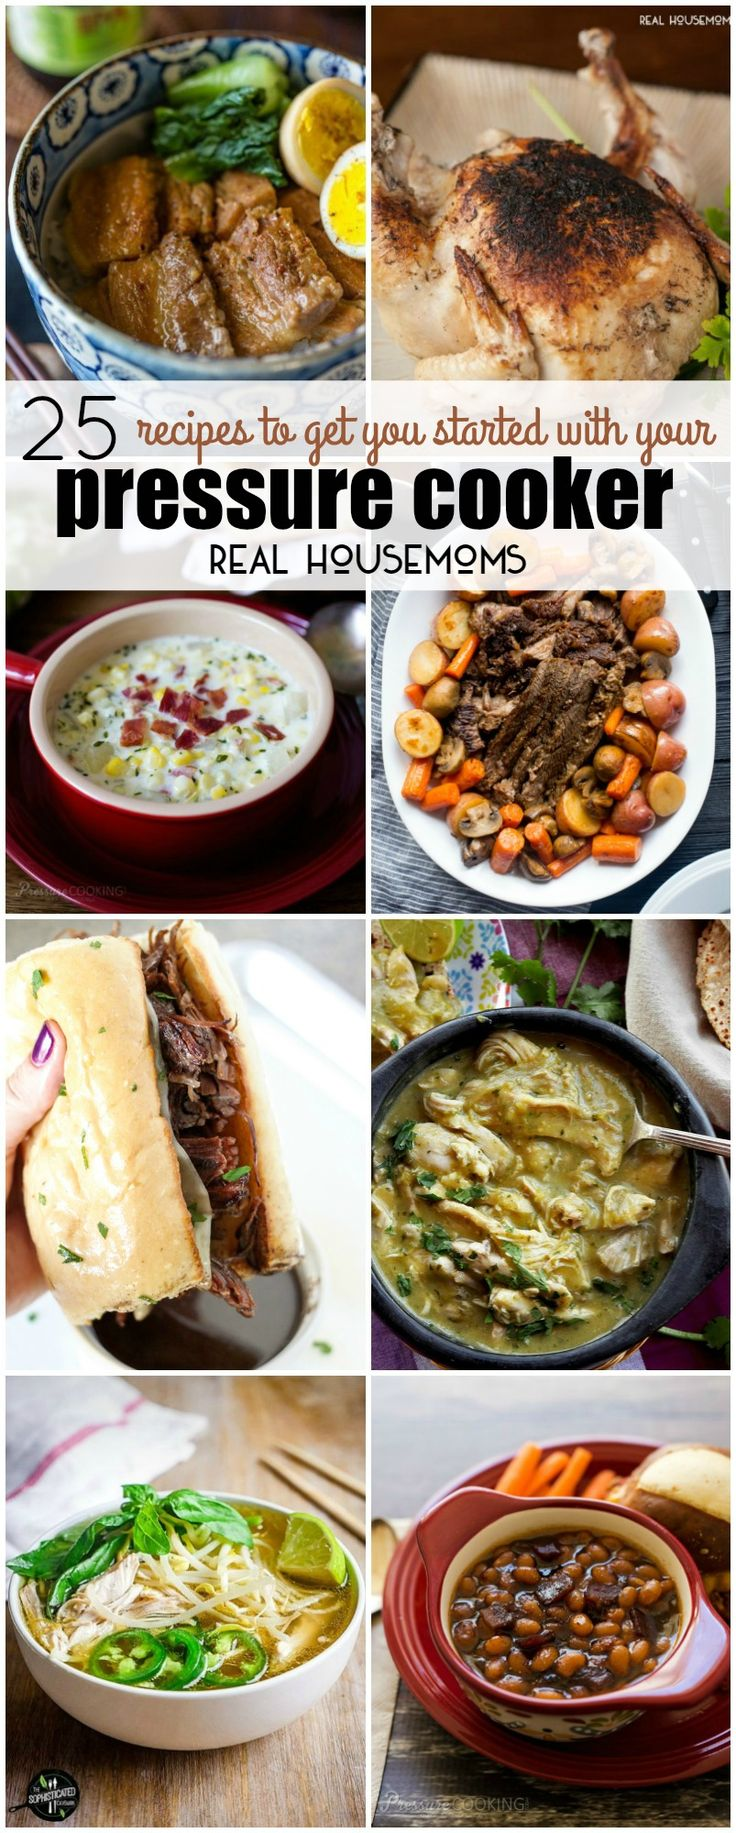 25 RECIPES TO GET YOU STARTED WITH YOUR PRESSURE COOKER. Where you like to use a classic pressure cooker or an Instant Pot, these recipes are sure to make cooking dinner a snap!